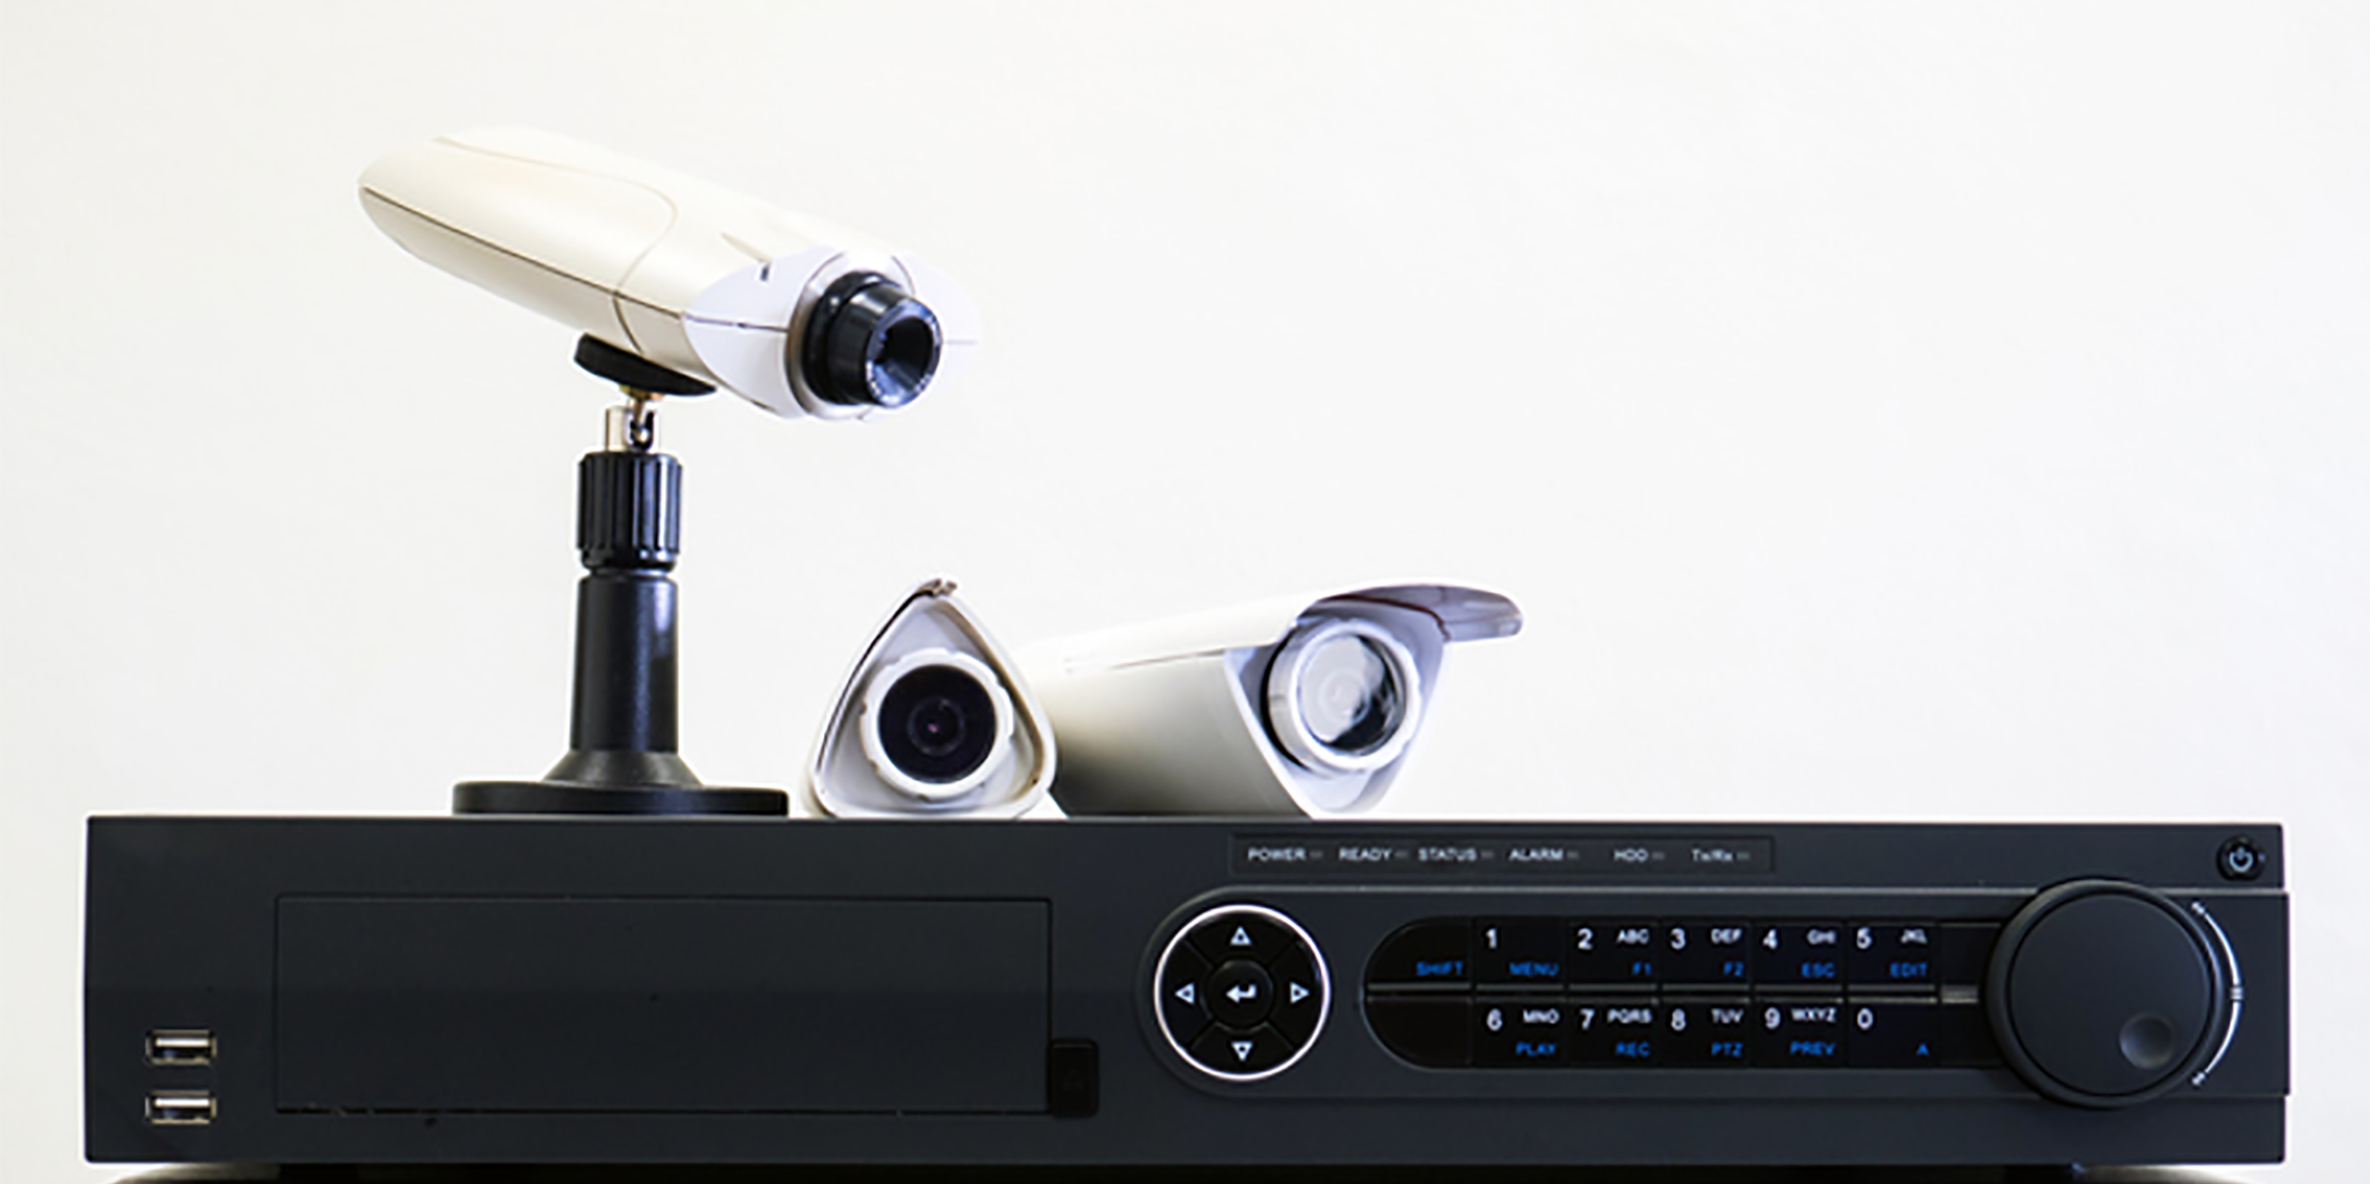 NVR vs. Cloud Surveillance: What Does It Mean for Your Business?